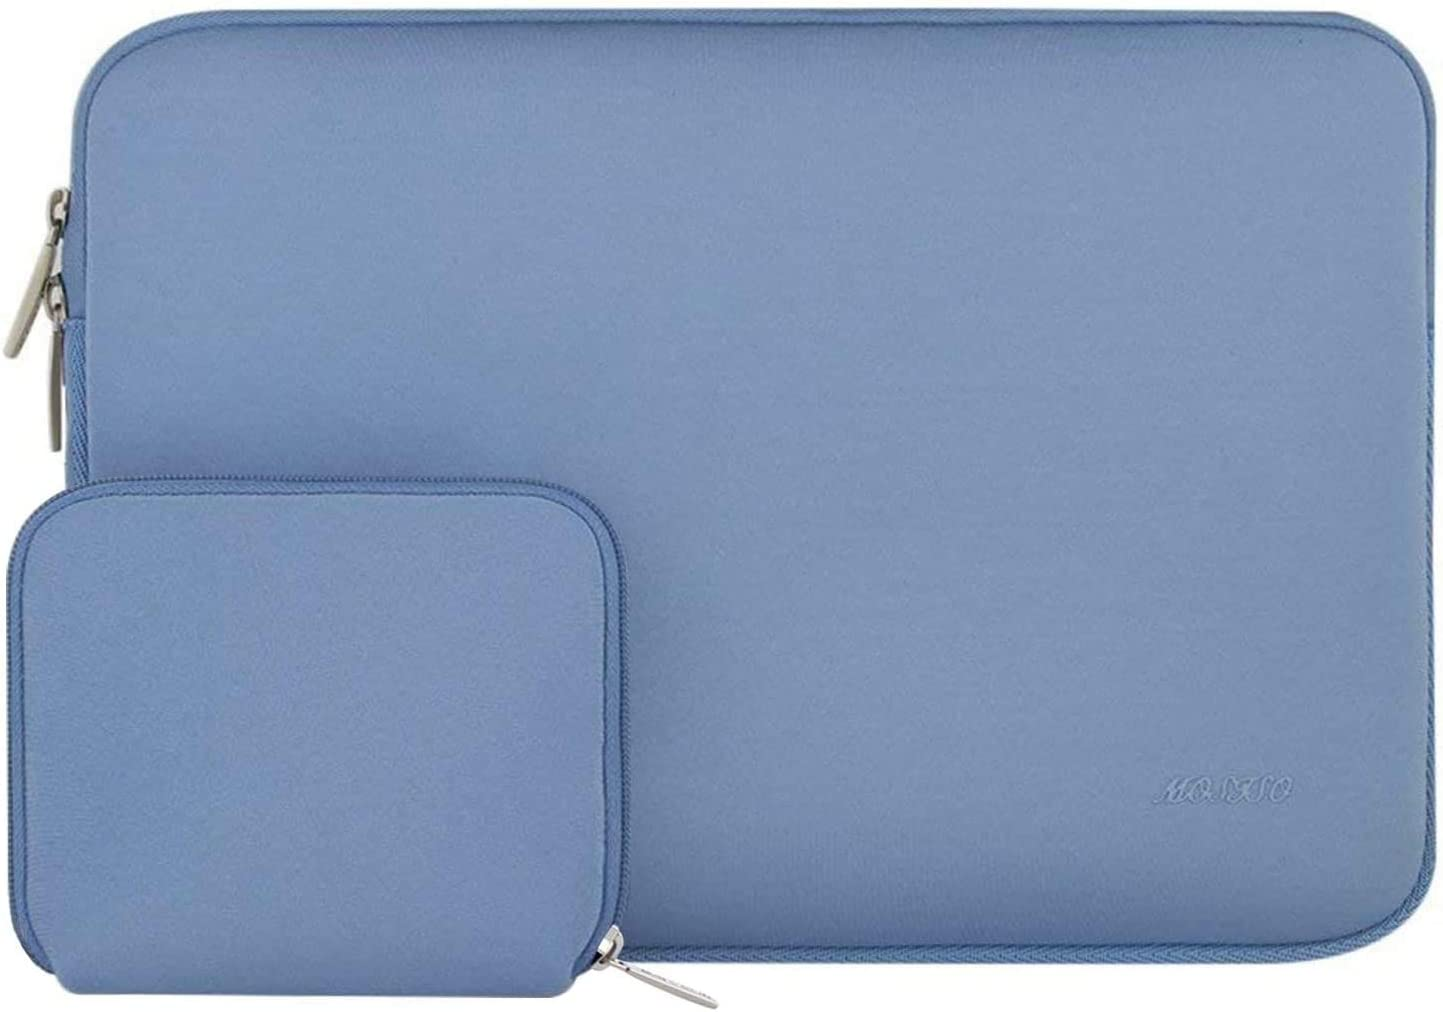 MOSISO Laptop Sleeve Compatible with 11.6-12.3 inch Acer Chromebook R11/HP Stream/Samsung/Lenovo/ASUS/MacBook Air 11/Surface Pro X/7/6/5/4/3, Water Repellent Neoprene Bag with Small Case,Serenity Blue